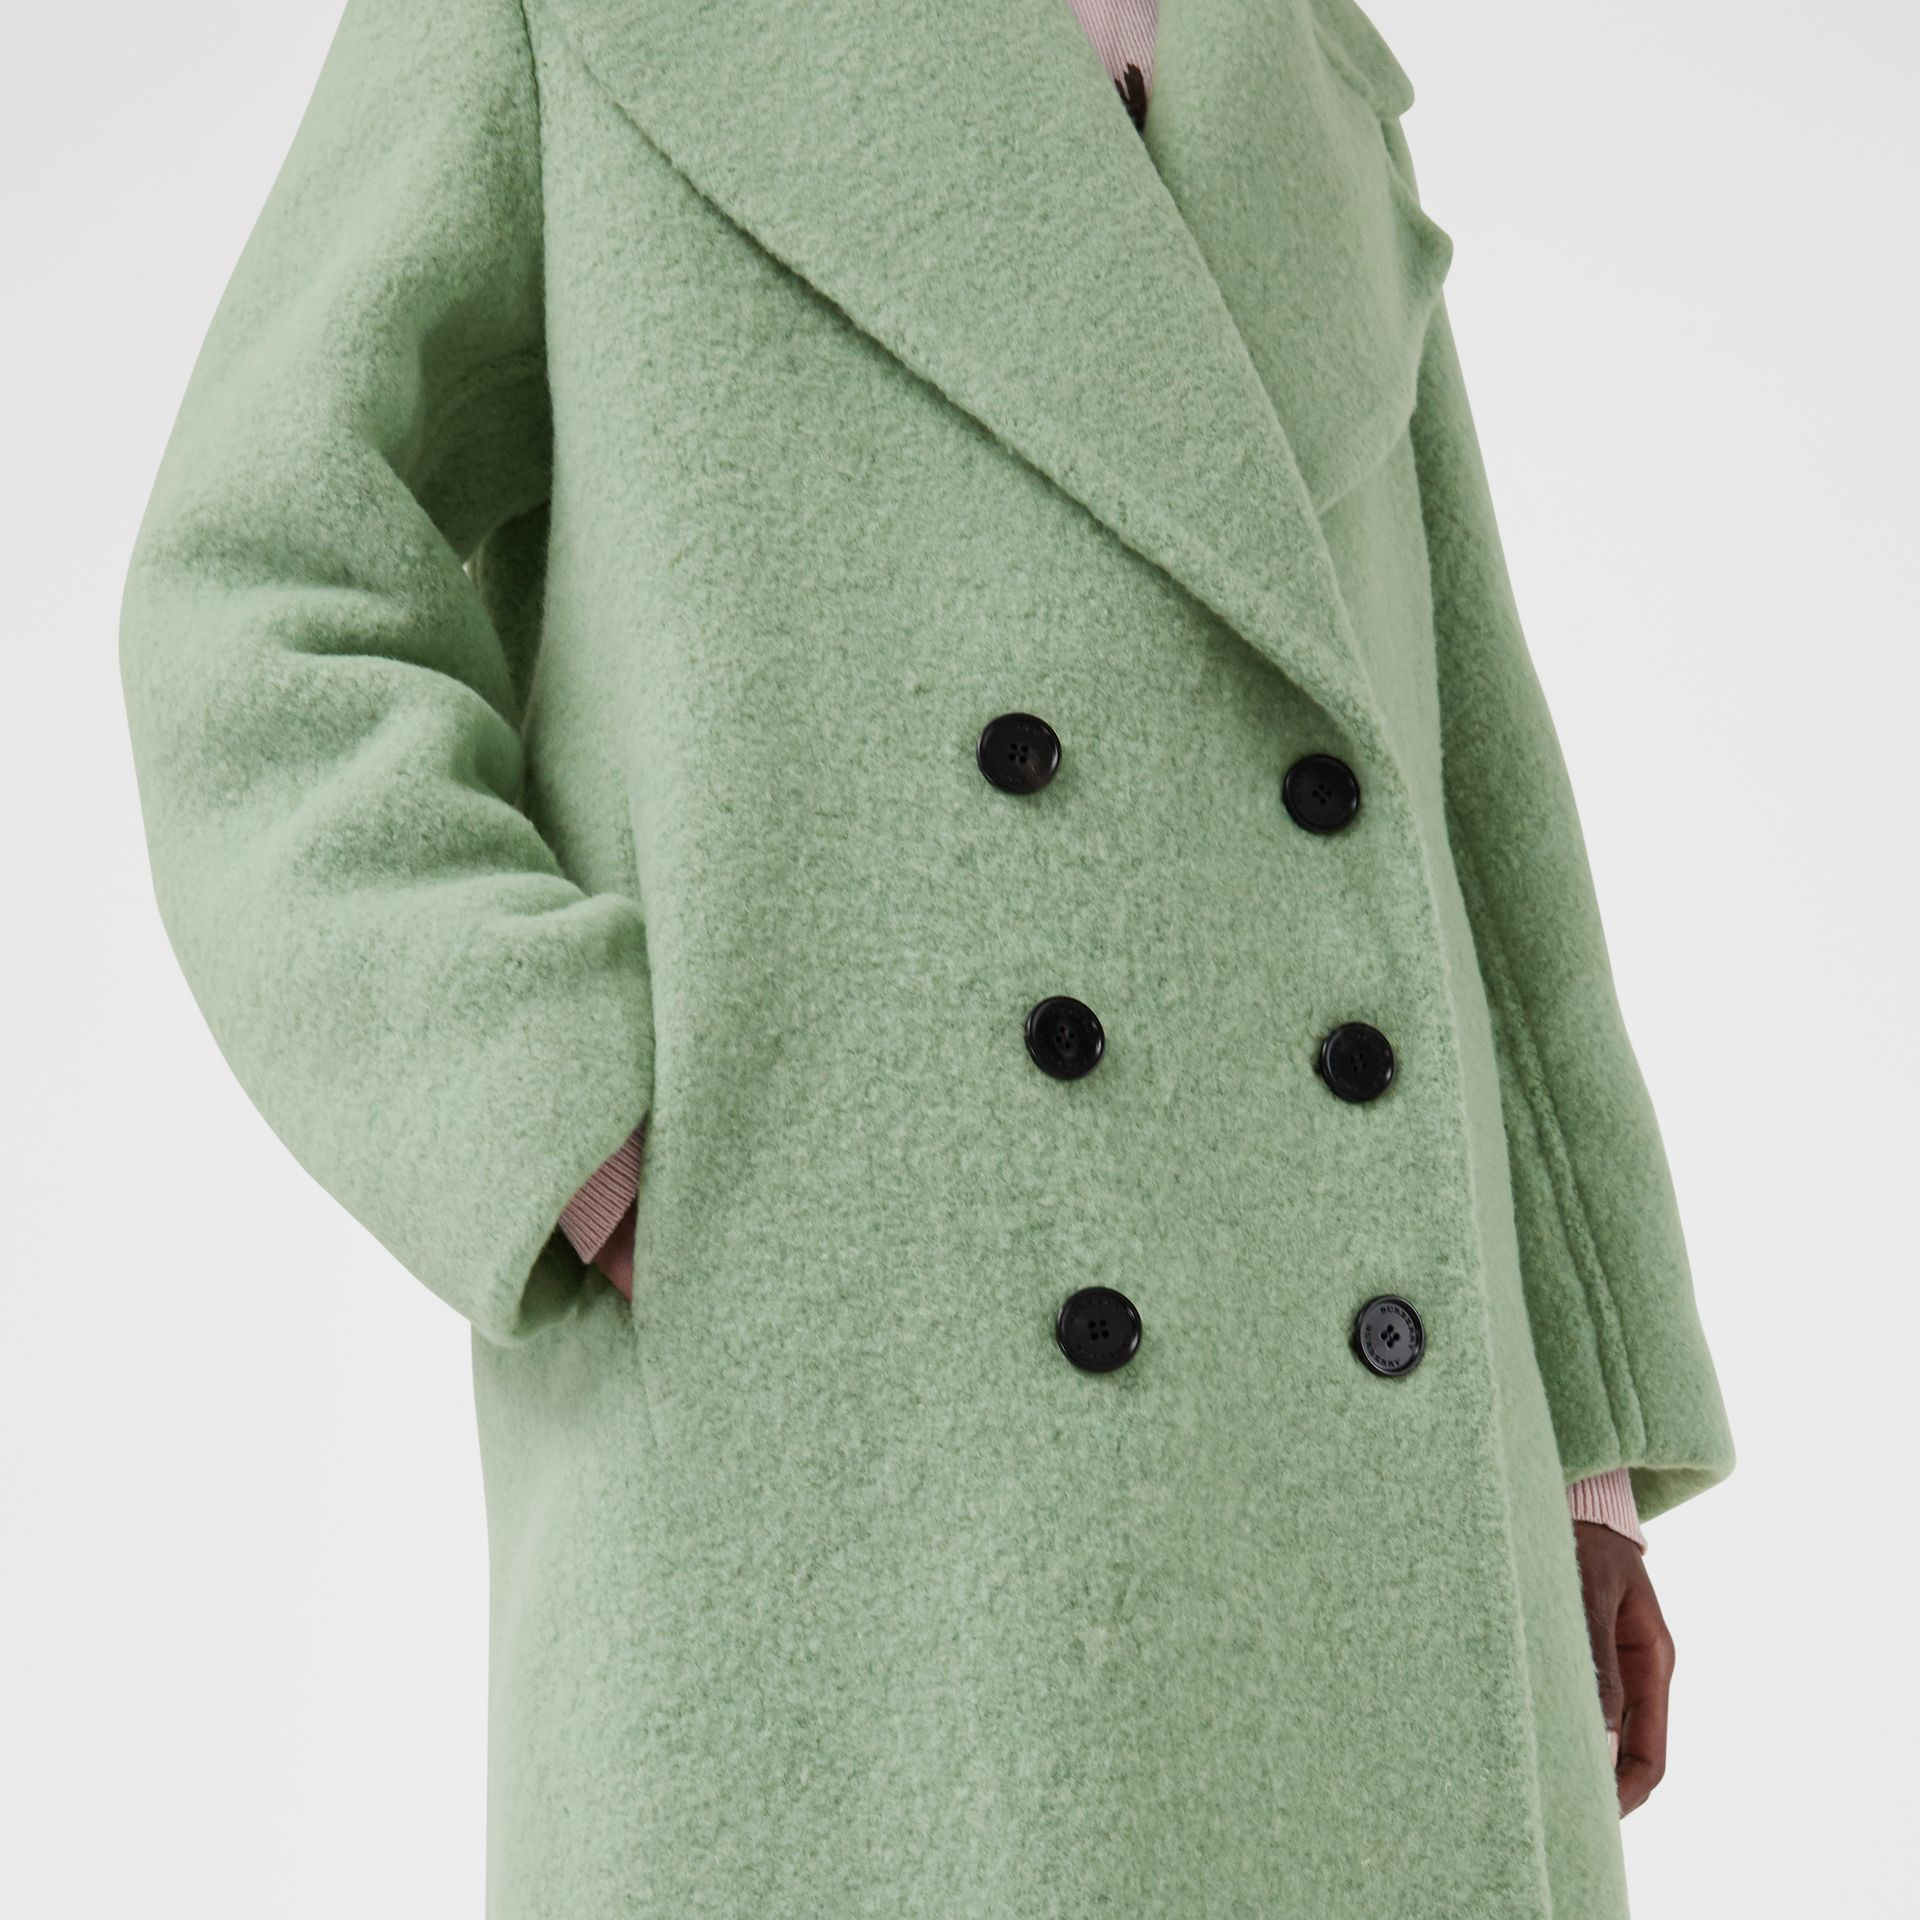 Double-faced Wool Alpaca Blend Oversized Coat in Celadon Green - Women | Burberry Hong Kong - gallery image 1